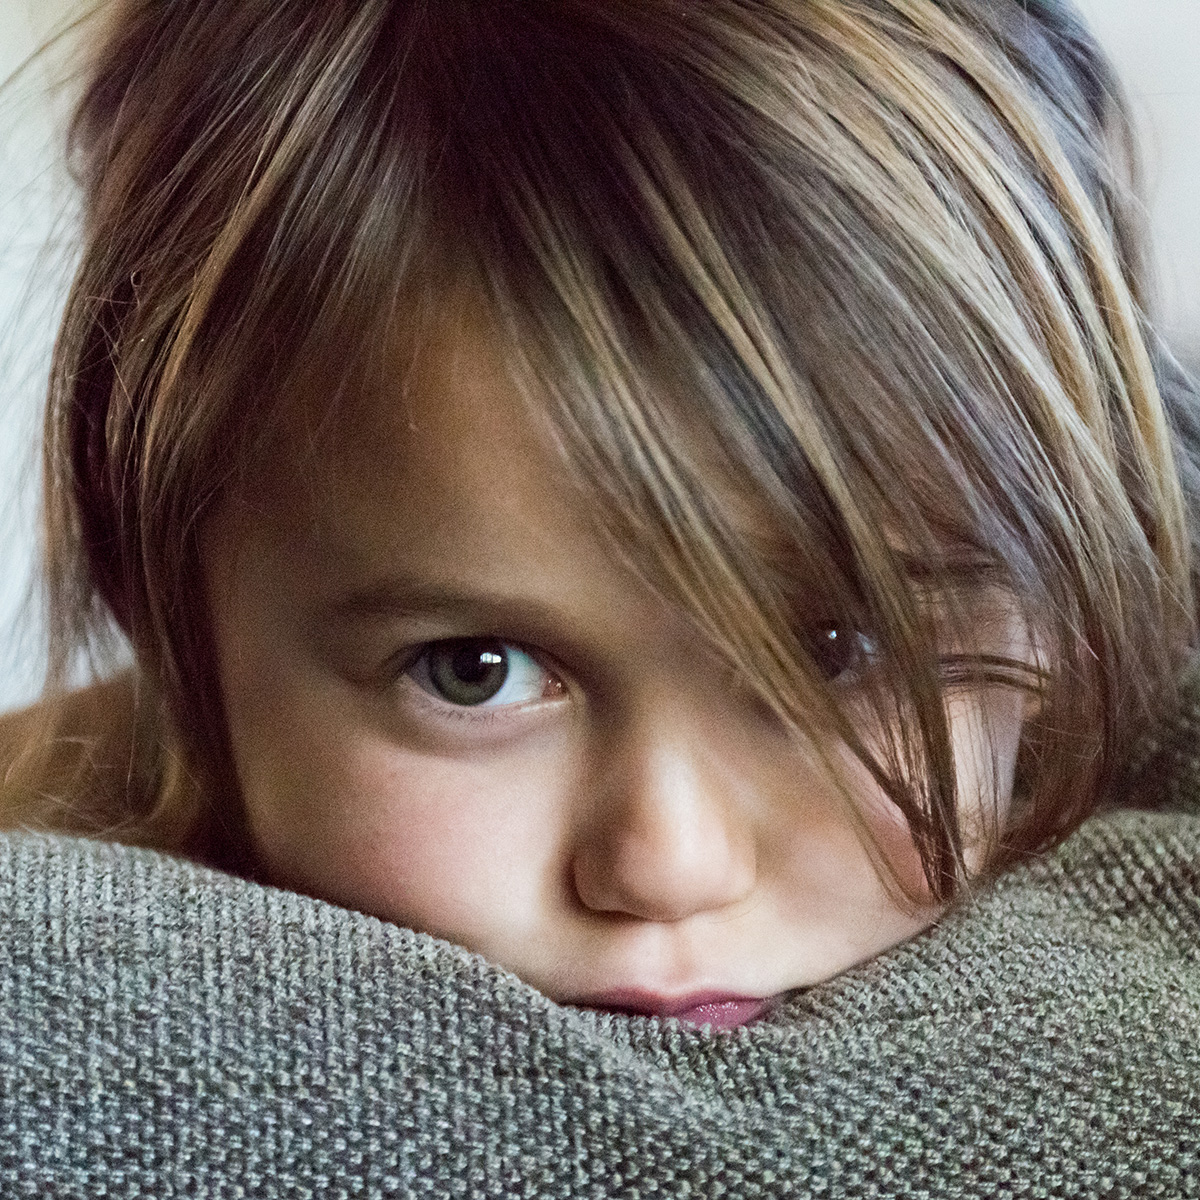 A child's stress can harm their mental health